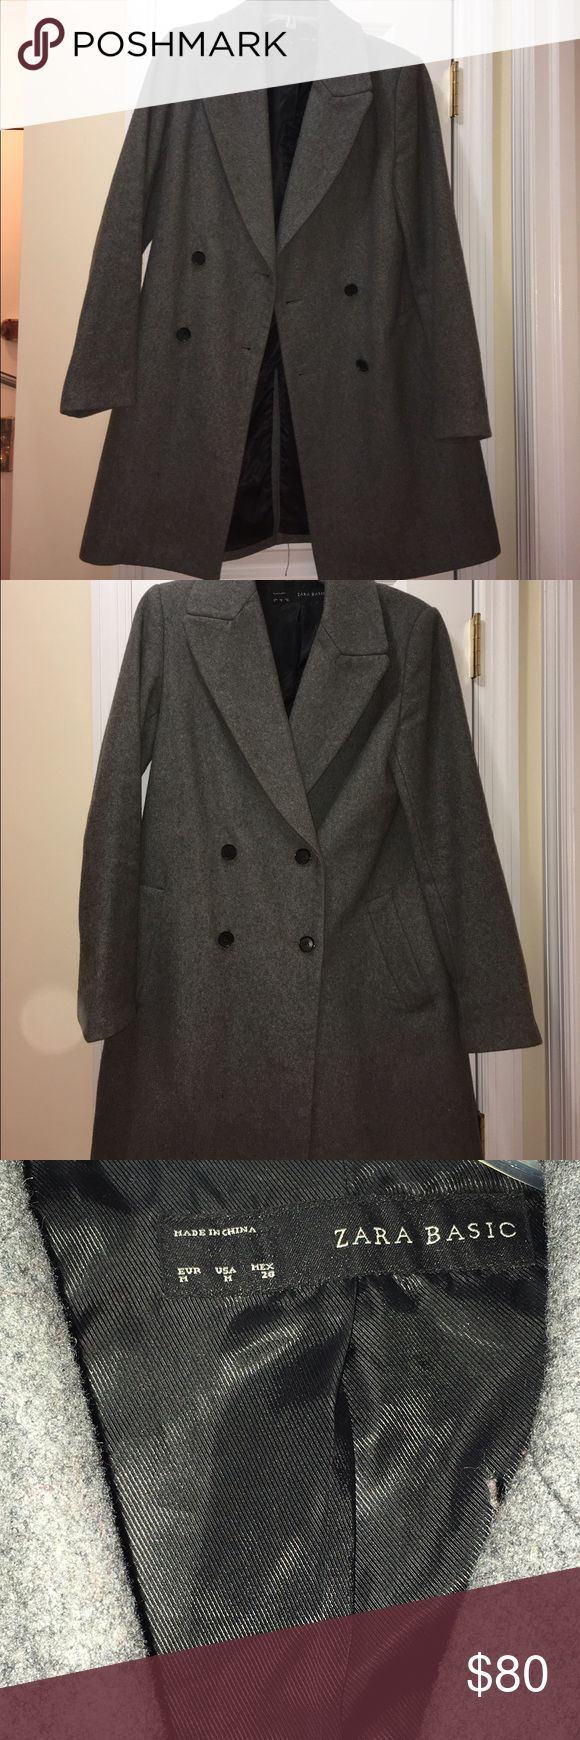 Zara Oversize Gray Winter Coat (M) A menswear-style double breasted Zara winter coat in gray. Women's size medium. Perfect for layering with a sweater or cardigan underneath. In excellent condition! Zara Jackets & Coats